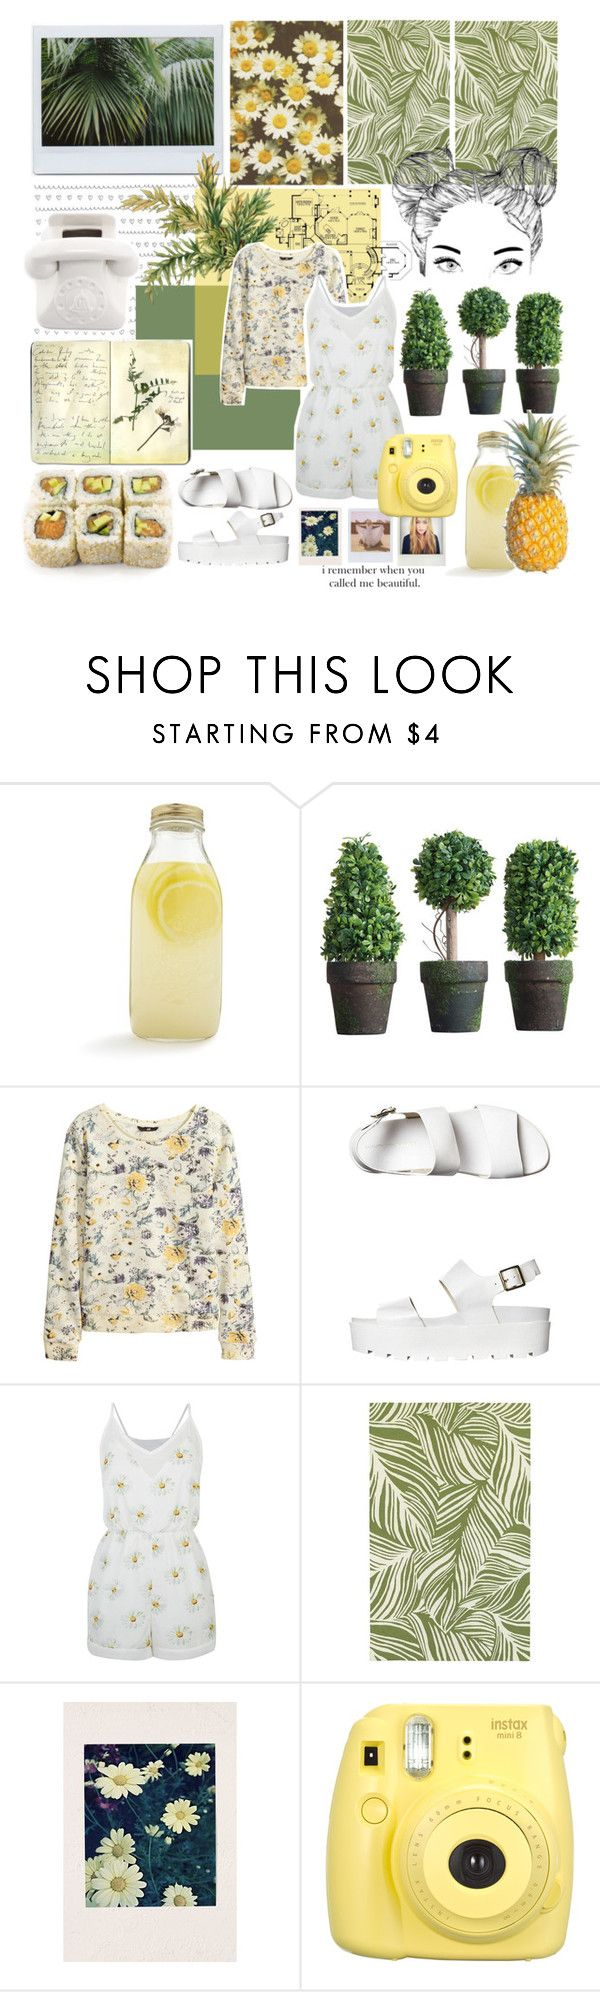 """""""i remember when you called me beautiful."""" by taspxa ❤ liked on Polyvore featuring Bormioli Rocco, Moleskine, H&M, Windsor Smith, Fashion Union, Oriental Weavers, Polaroid, Band of Outsiders, Jonathan Adler and women's clothing"""